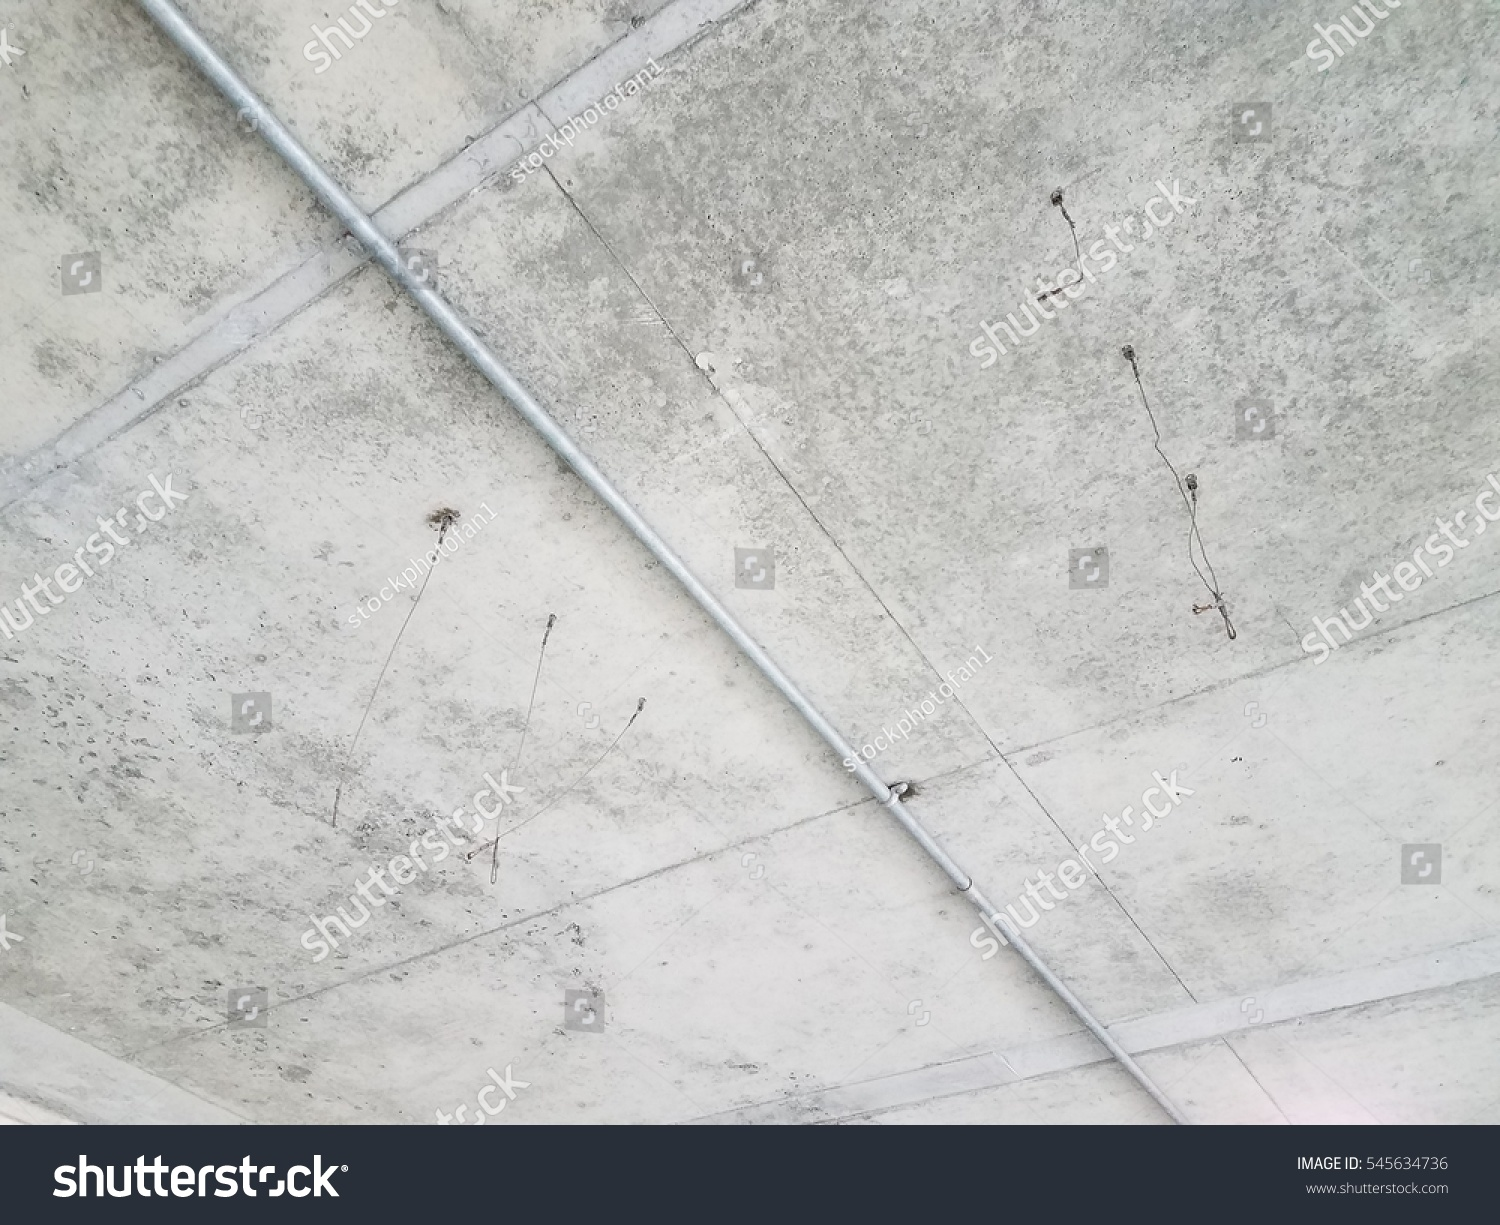 Wires Hanging Cement Ceiling Stock Photo (Safe to Use) 545634736 ...